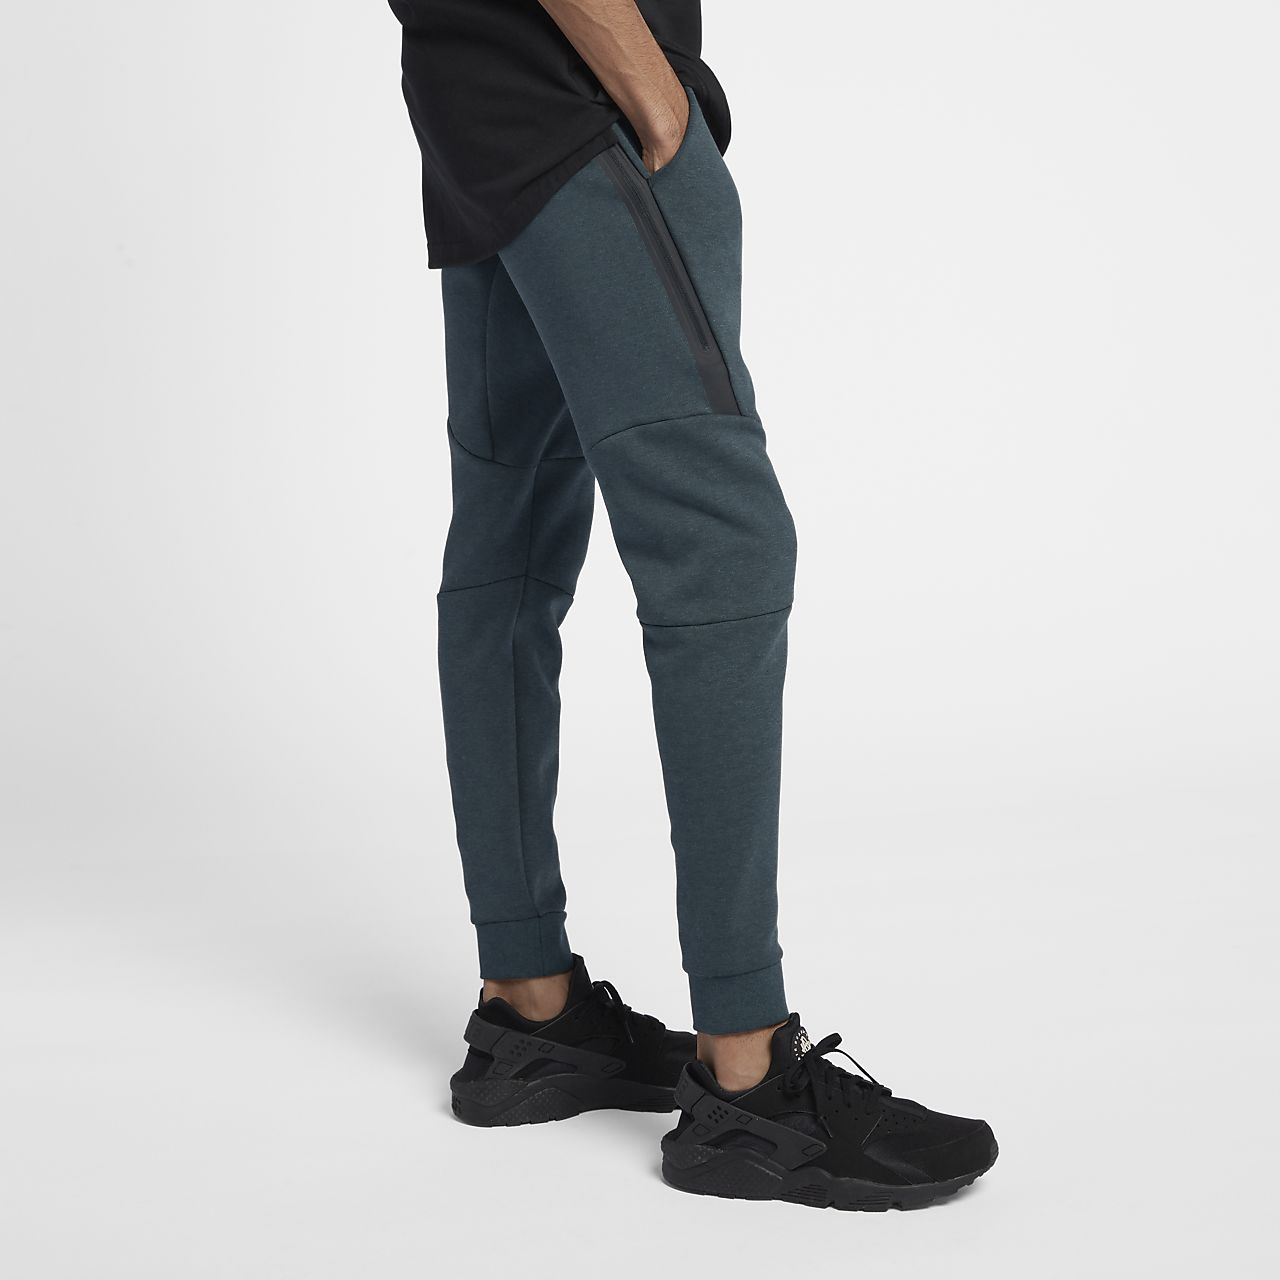 ... Pantalon de jogging Nike Sportswear Tech Fleece pour Homme